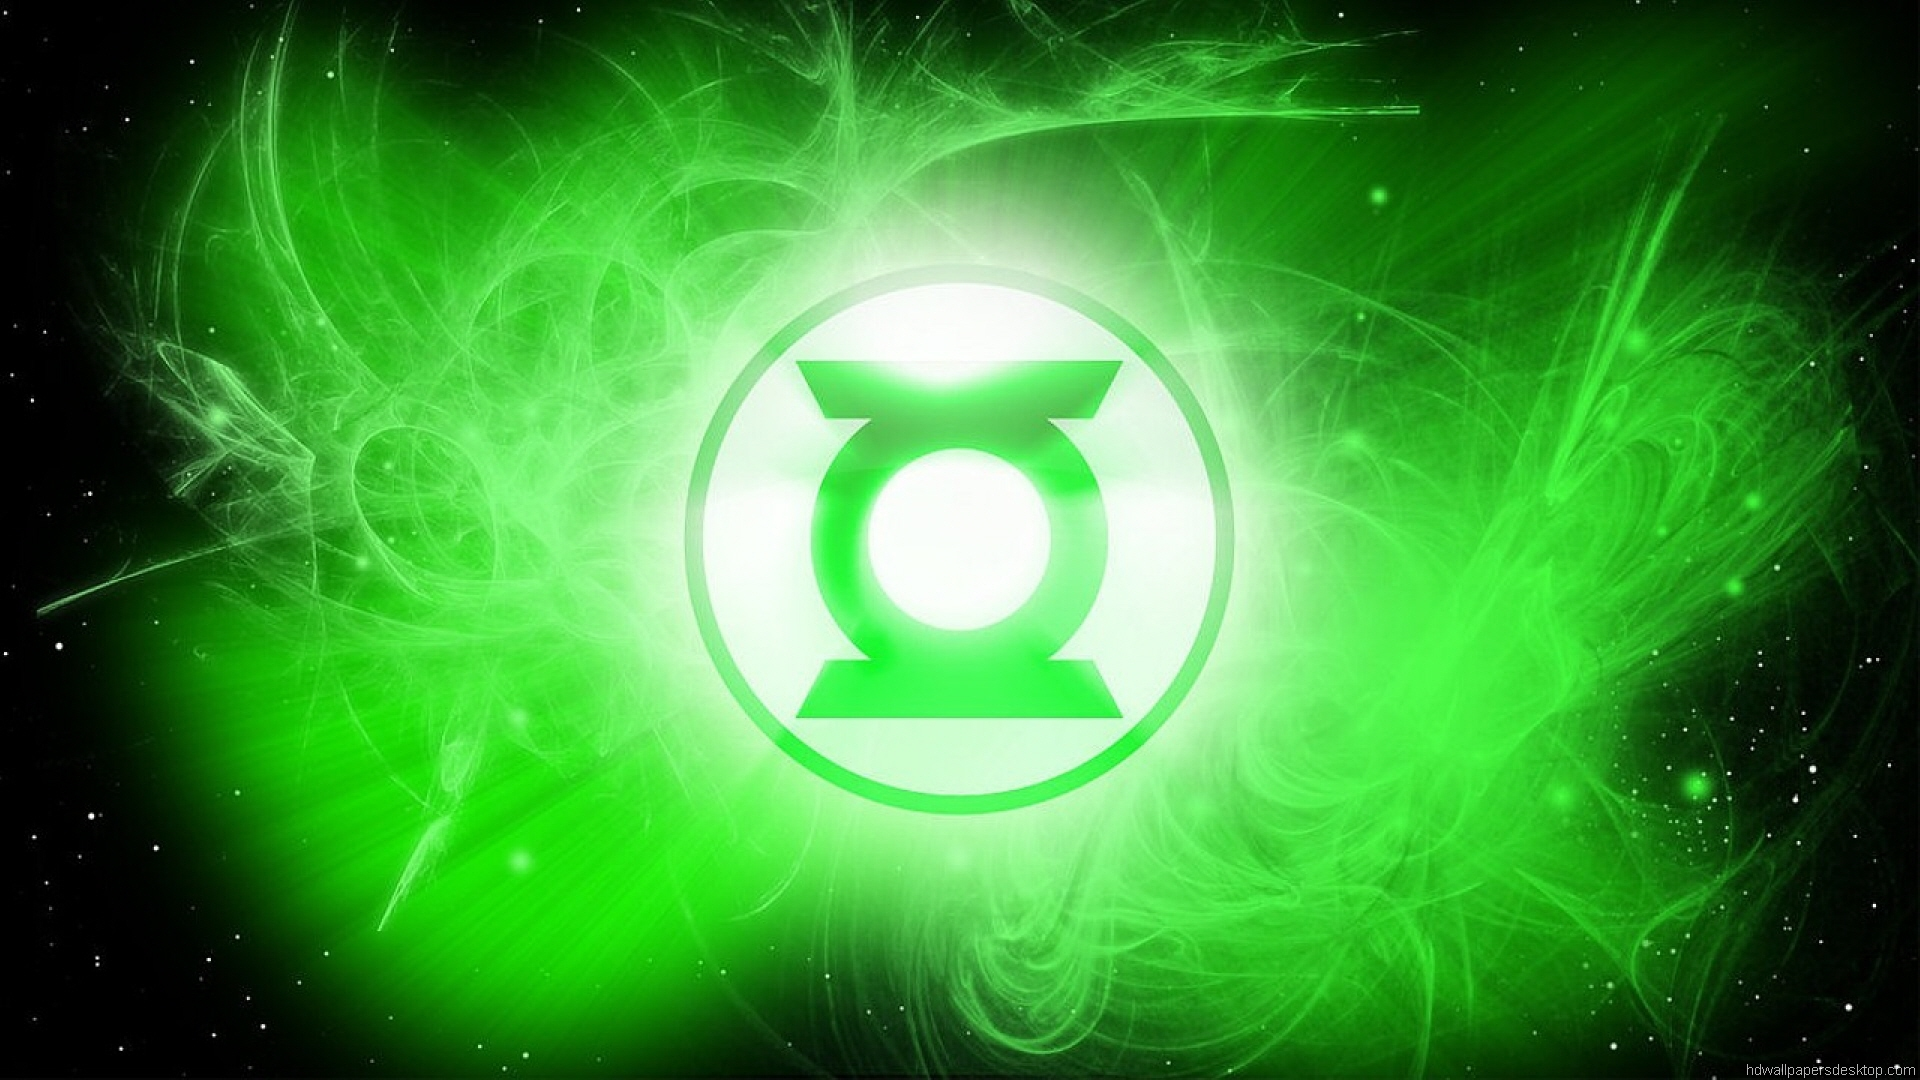 Cool Green Lantern Wallpaper